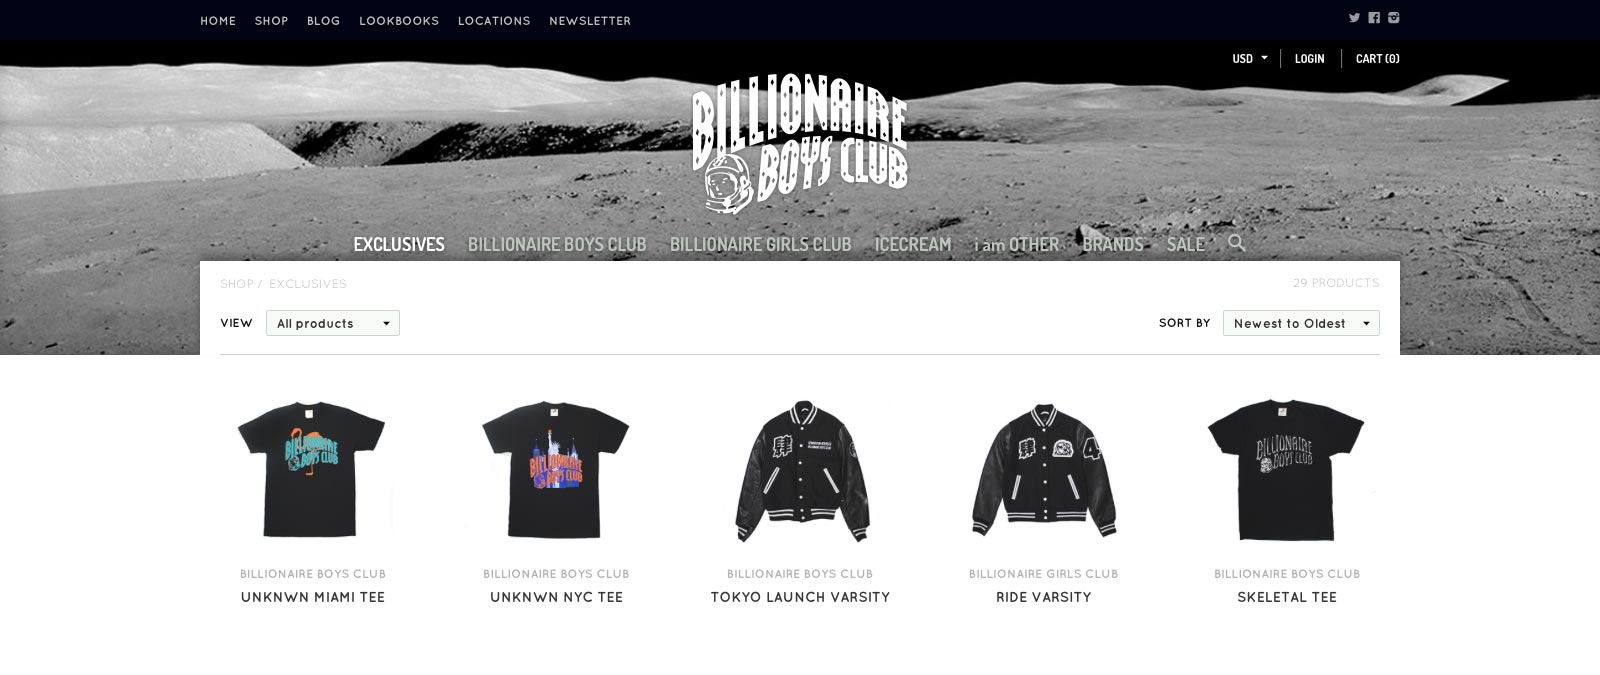 Billionaire Boys Club 2015